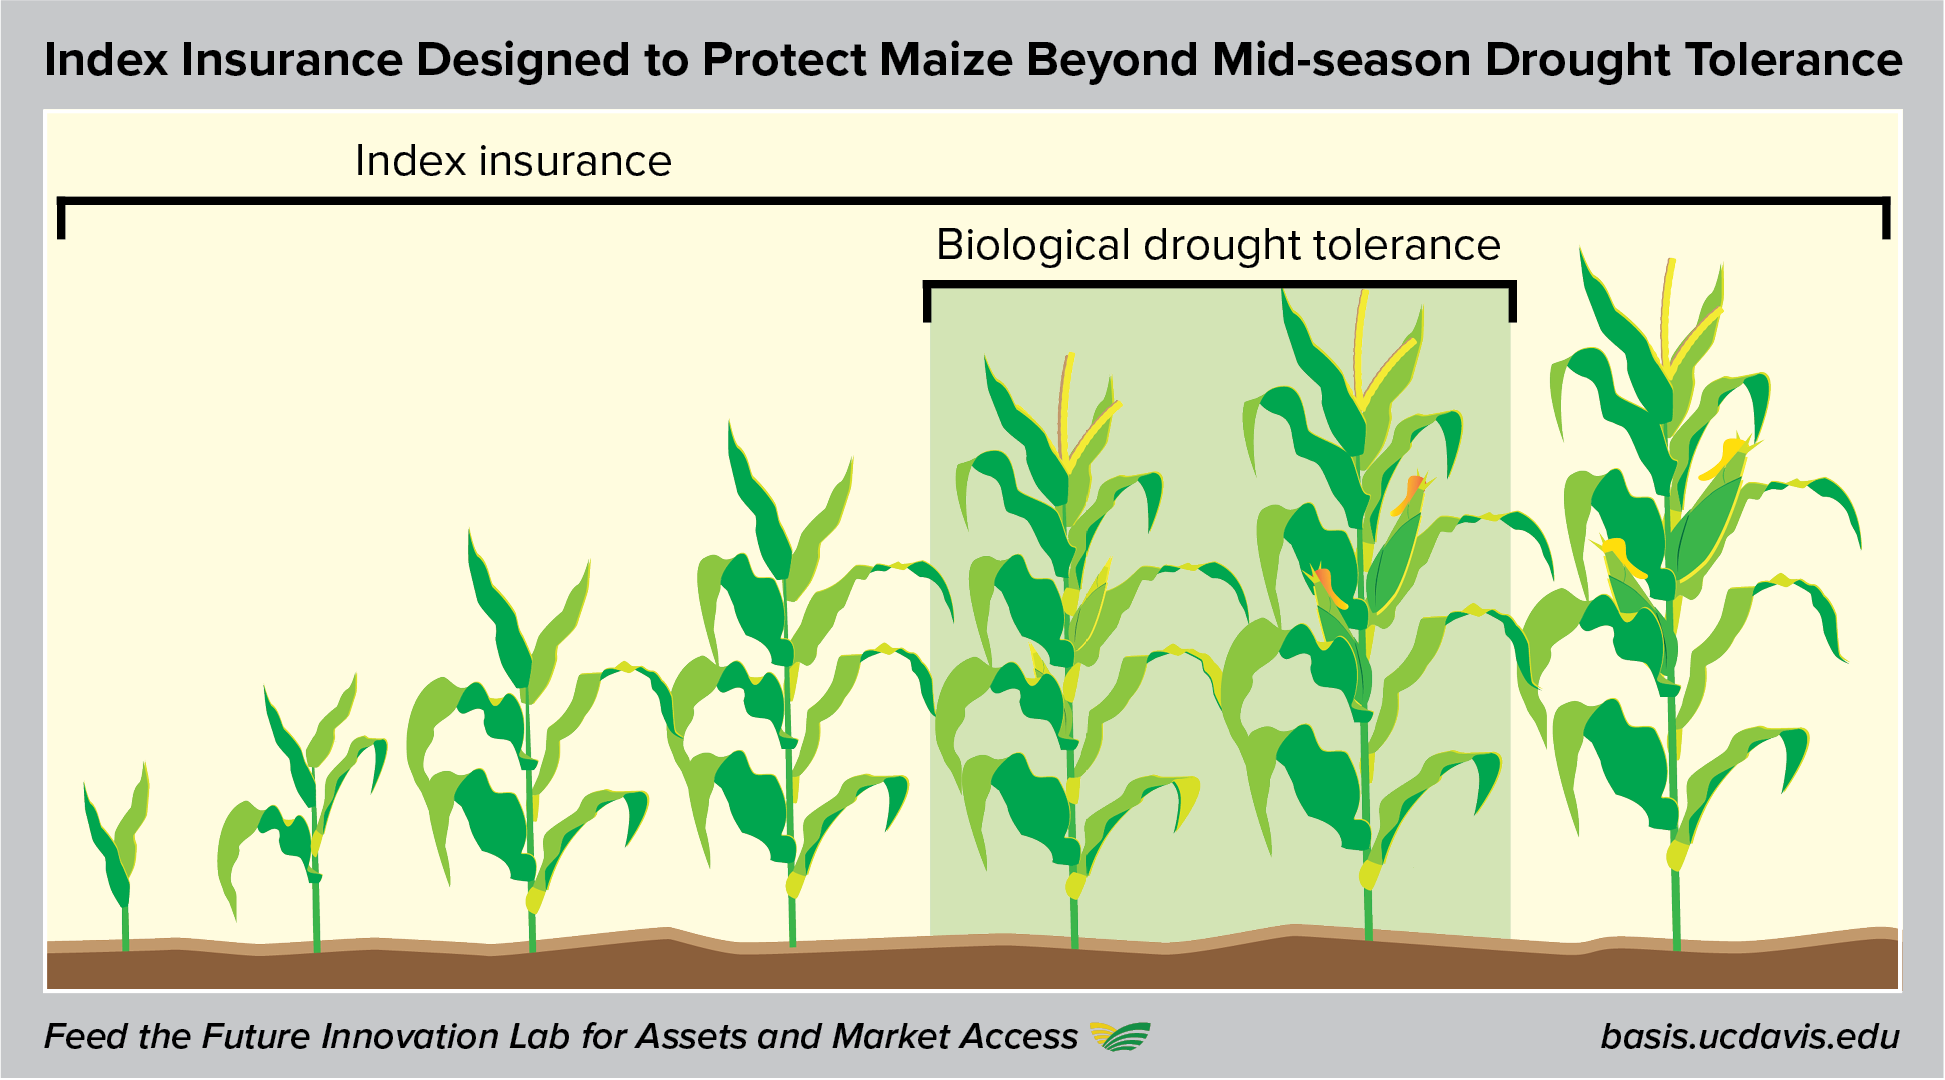 Drought tolerant maize and index insurance illustration